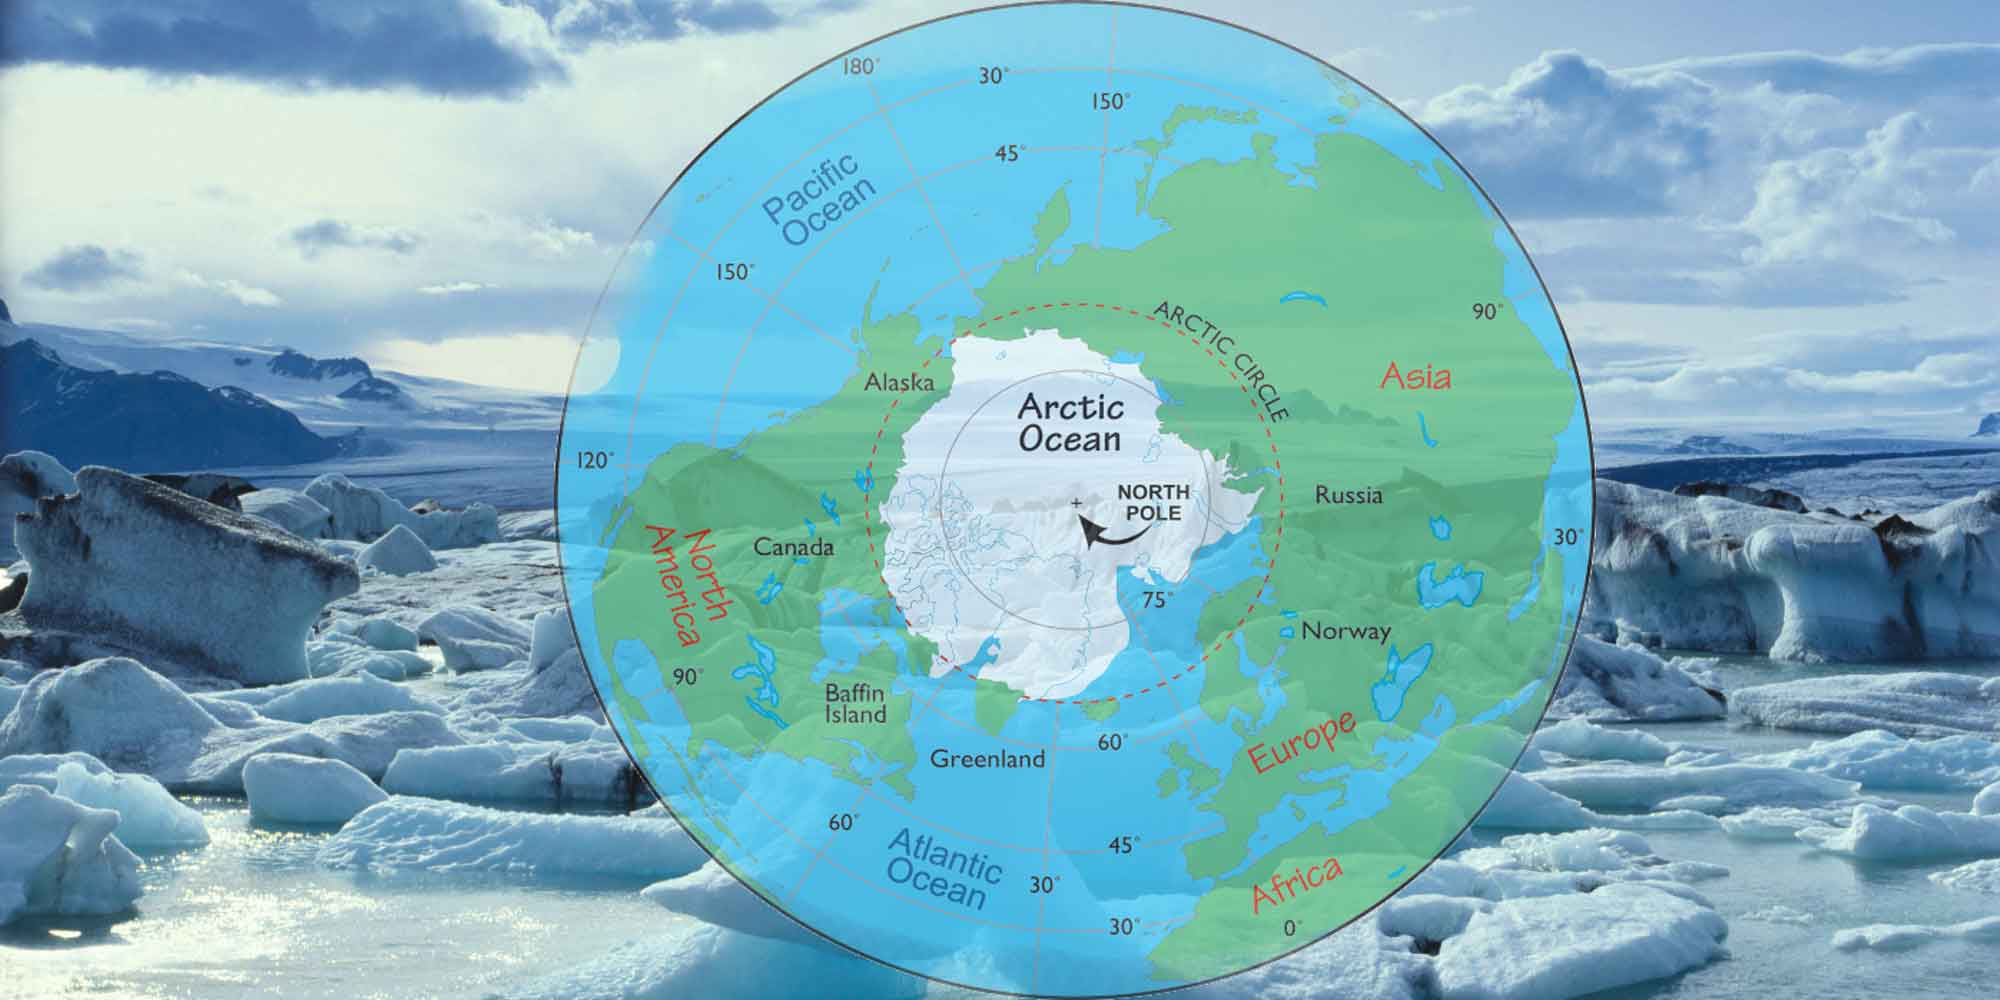 Arctic North Pole